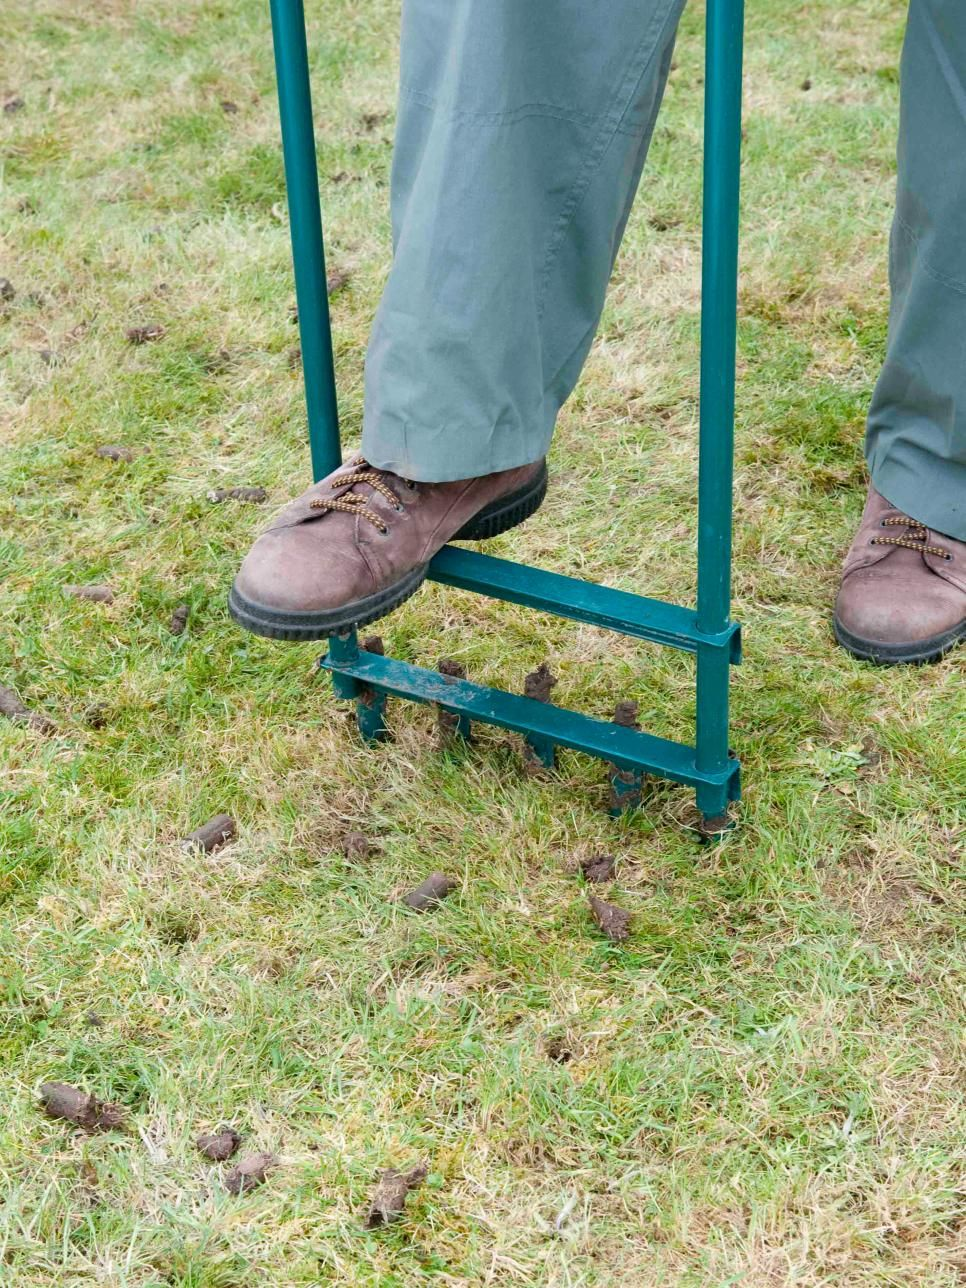 22 Year Round Lawn Care Tips